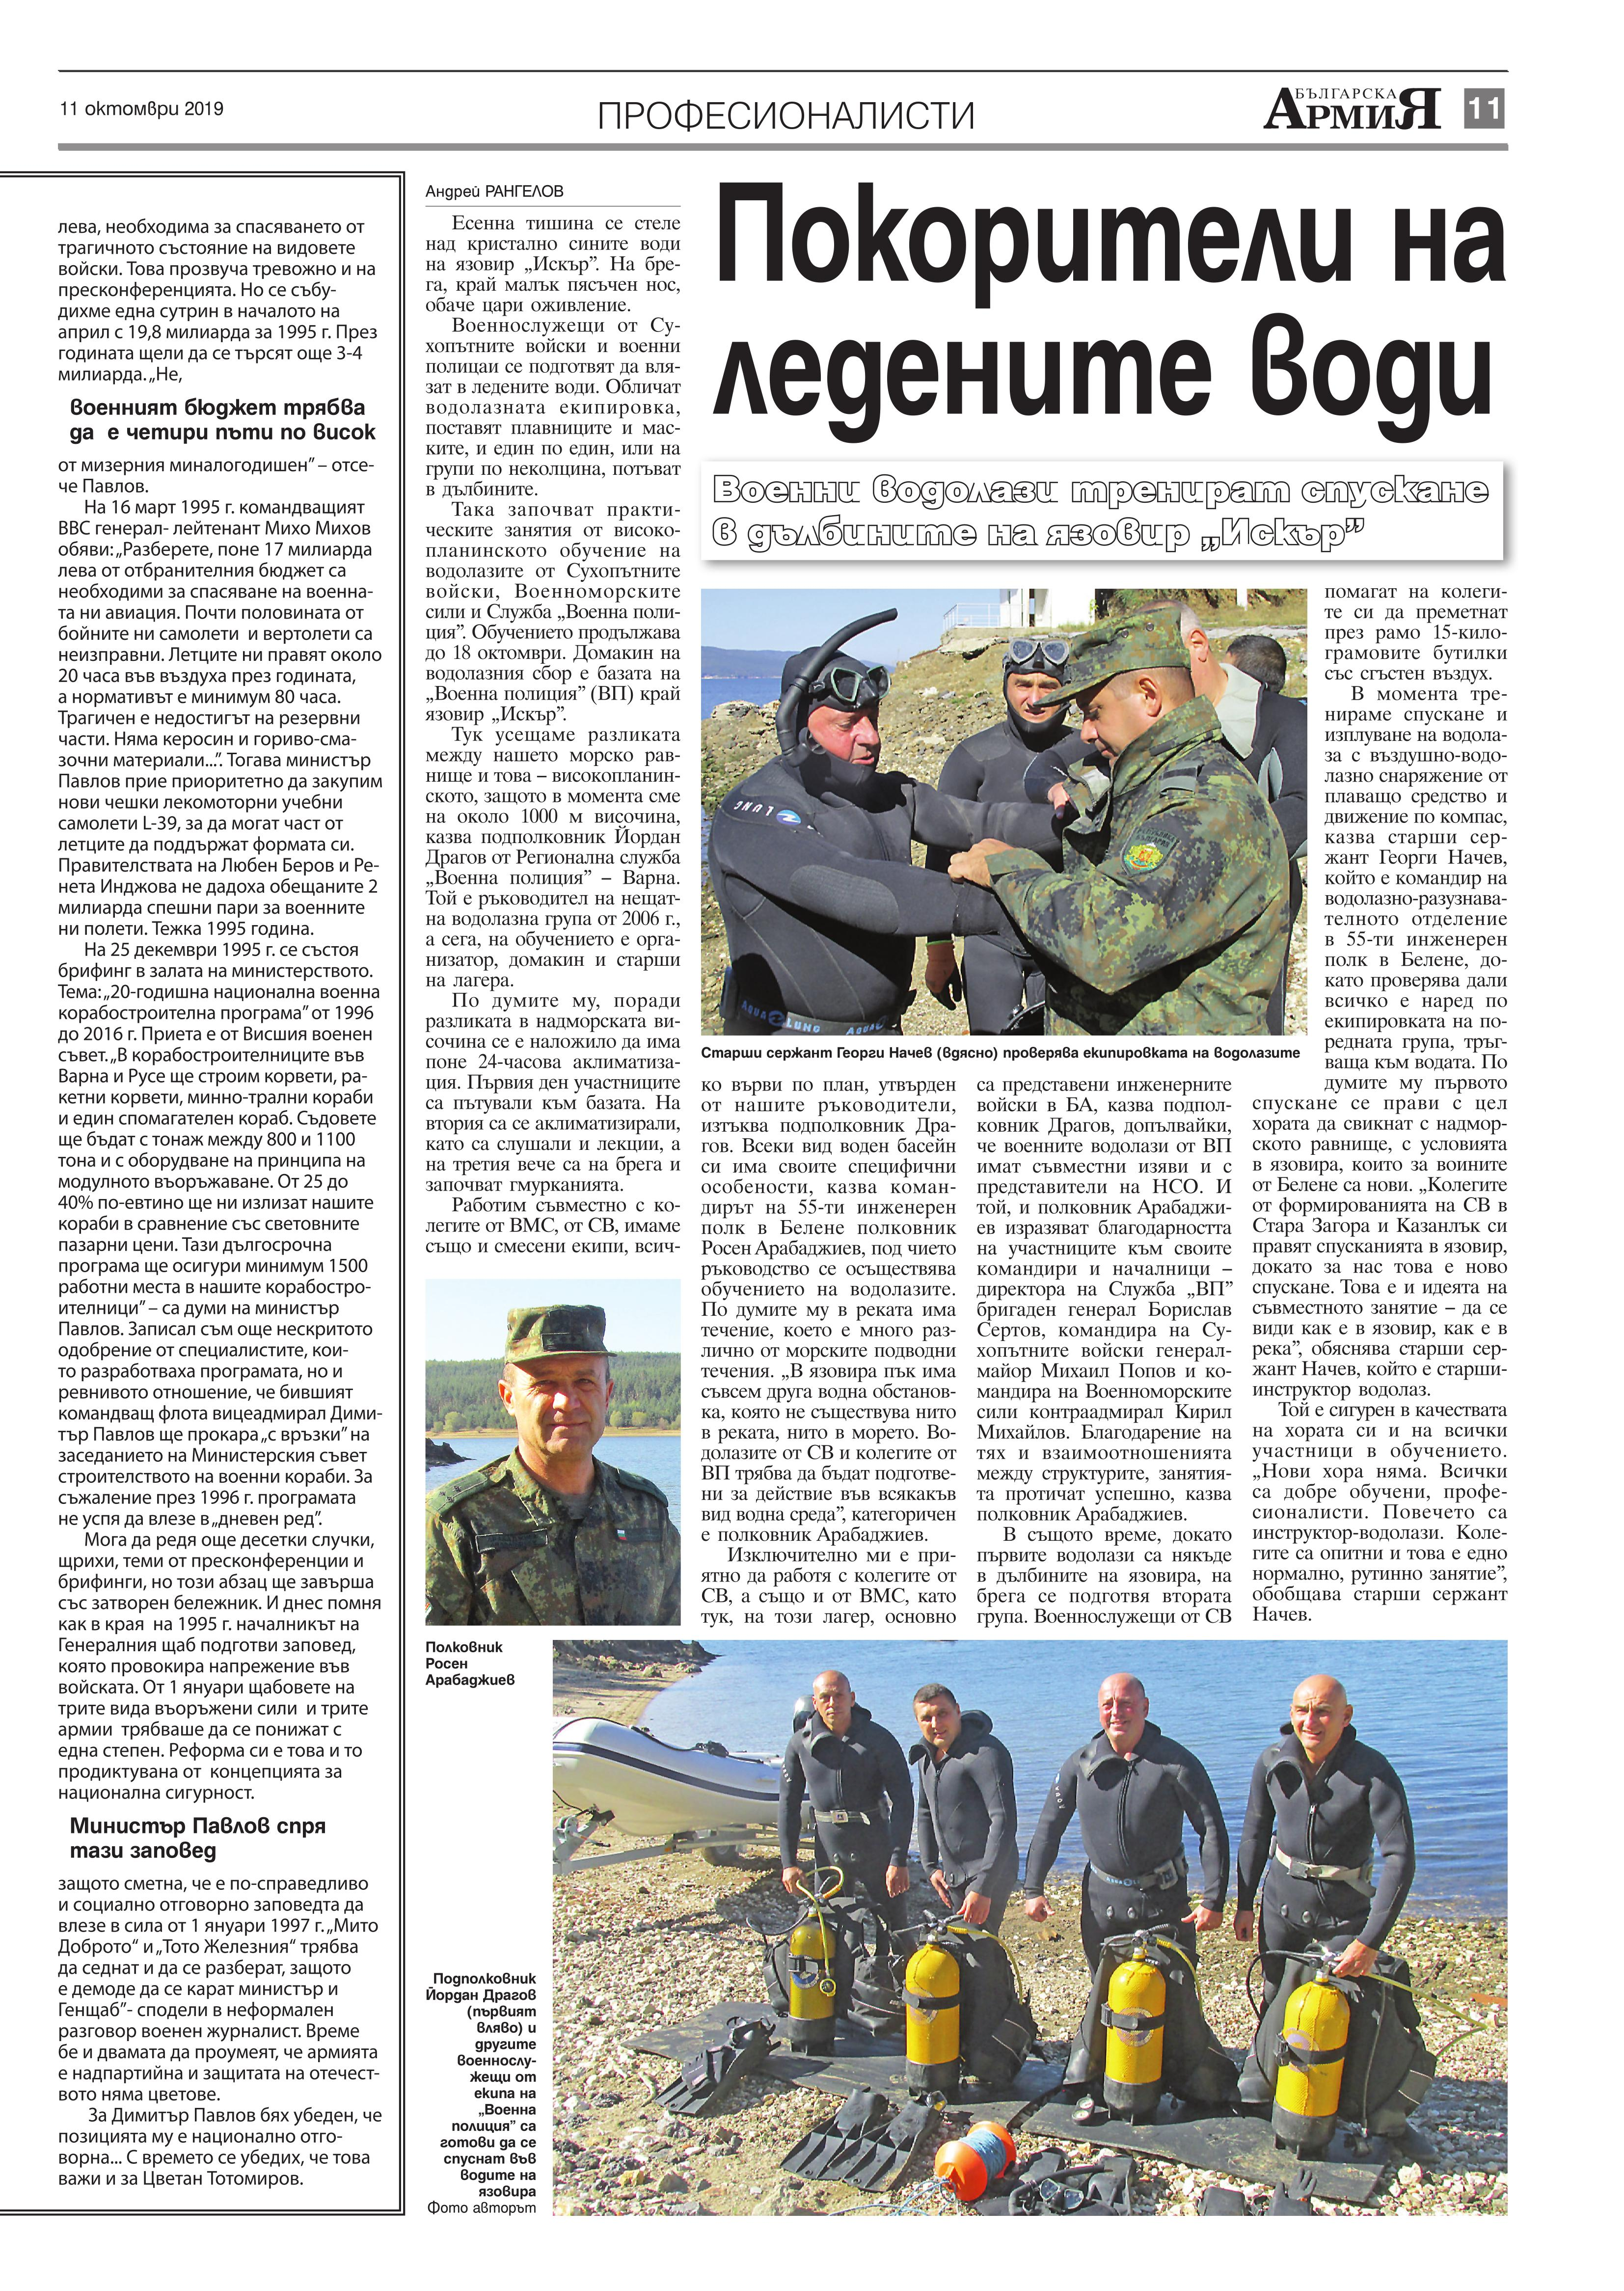 https://www.armymedia.bg/wp-content/uploads/2015/06/11.page1_-111.jpg